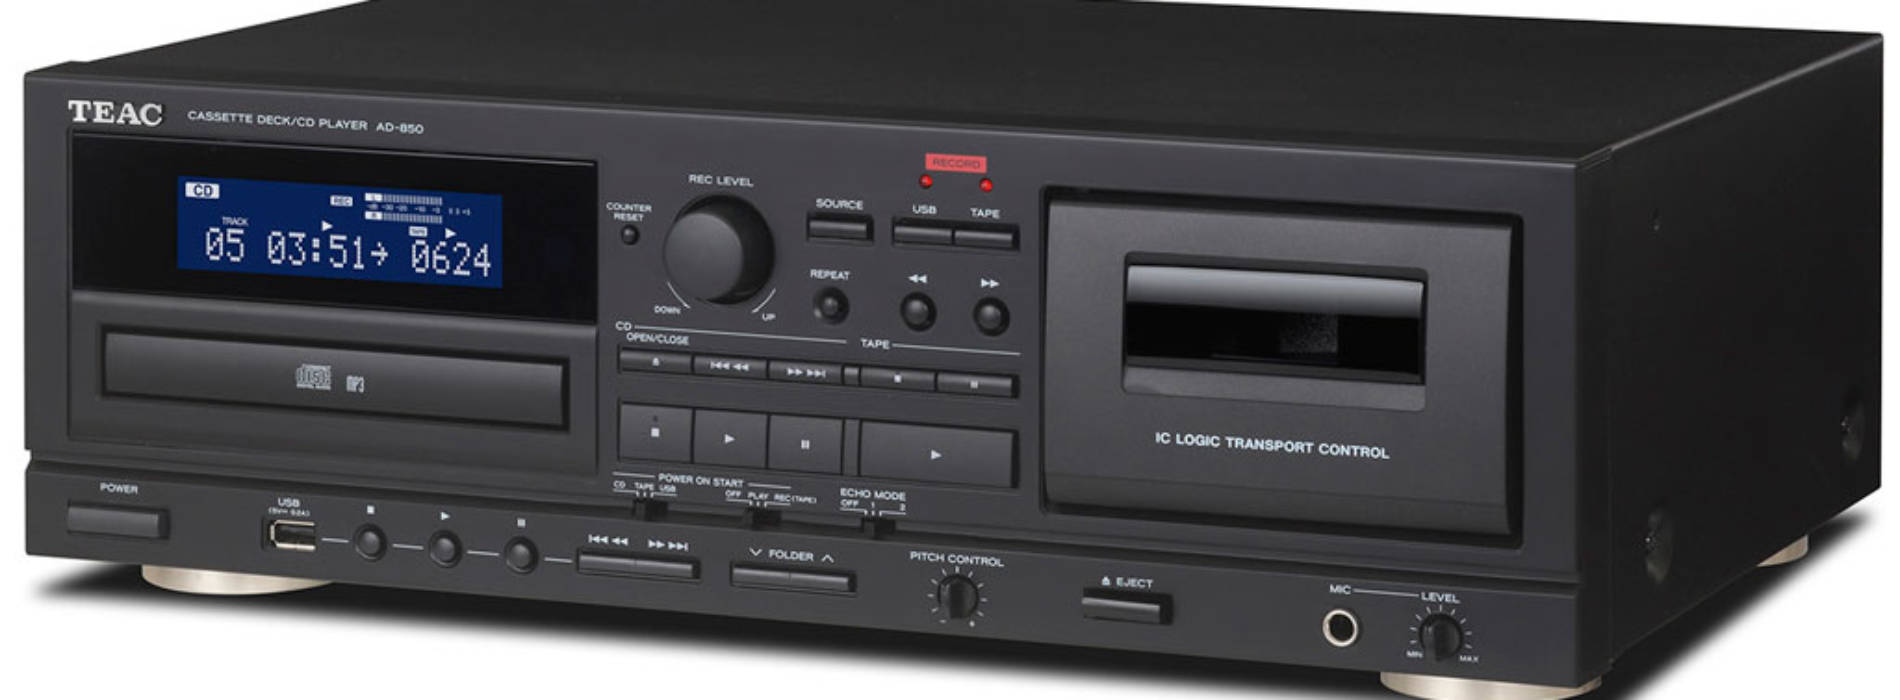 TEAC AD-850 lee y graba música analógica y digital